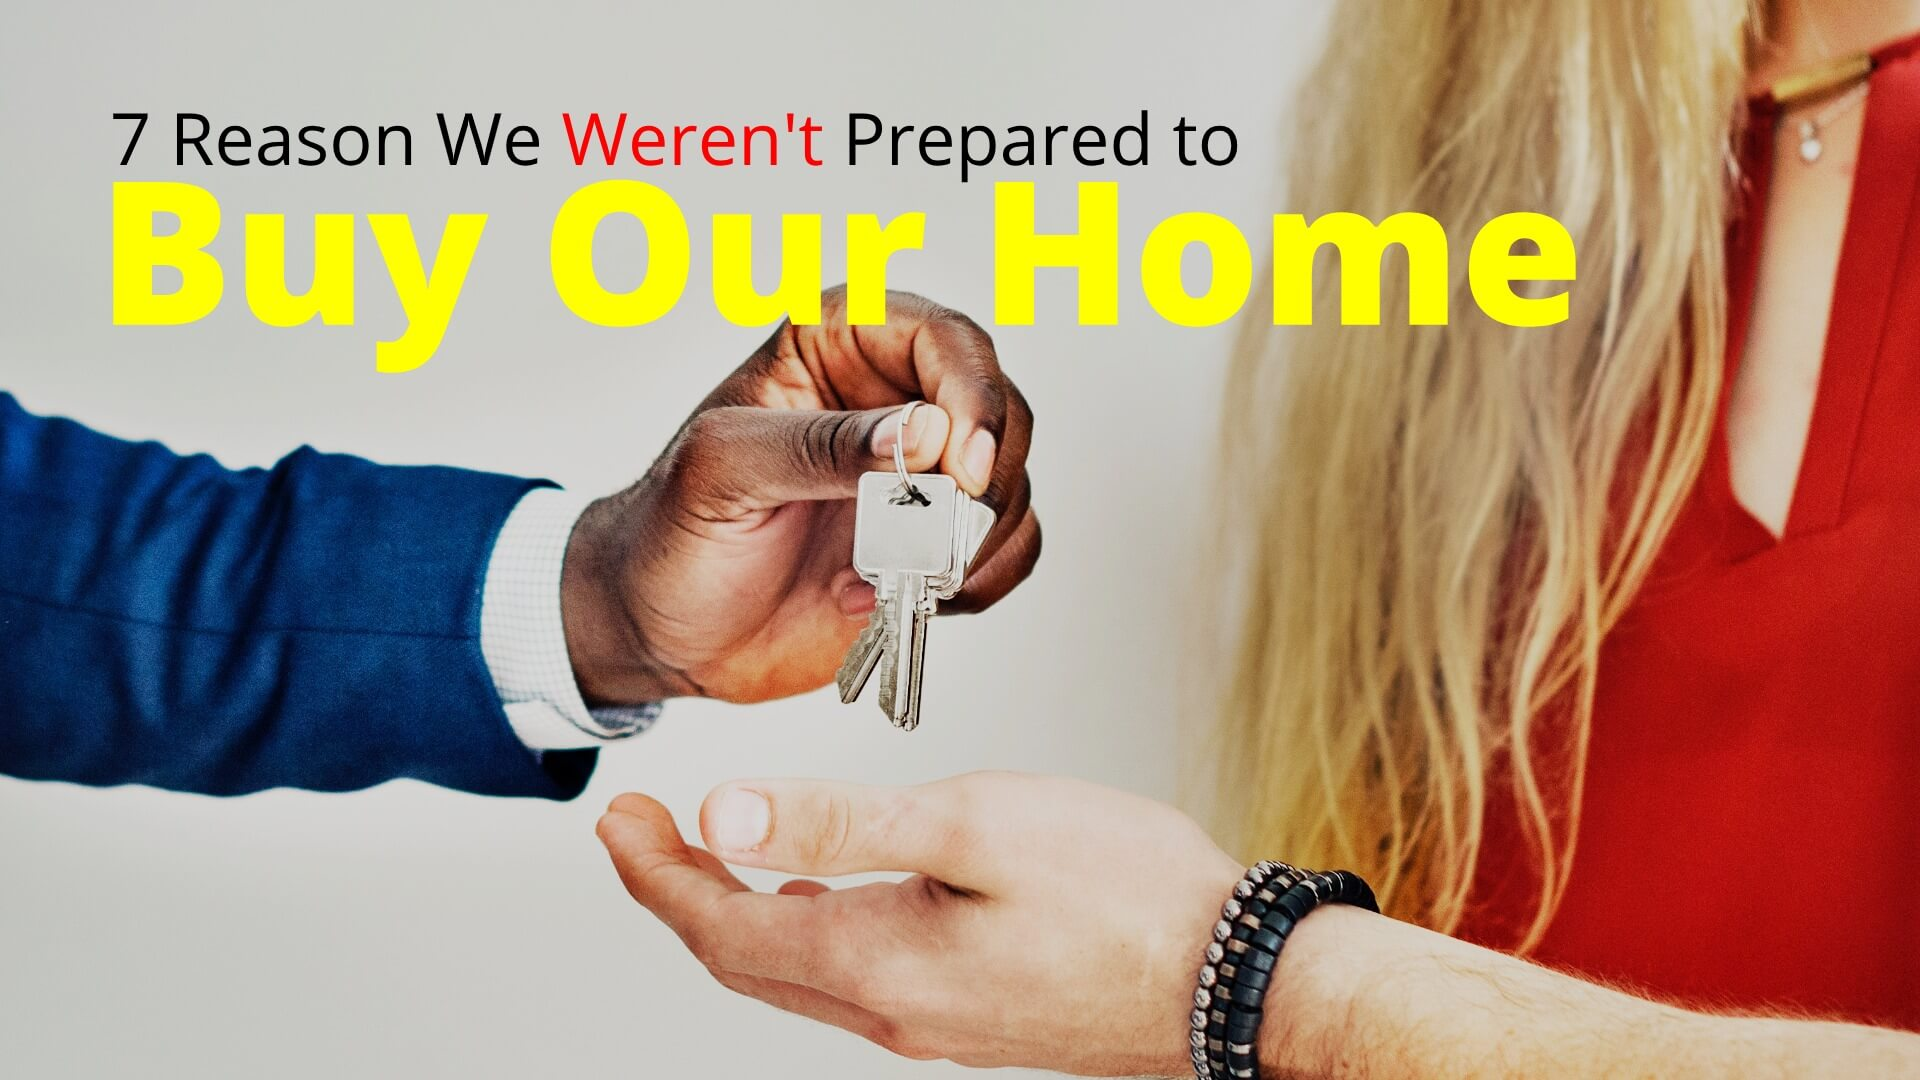 You are currently viewing 7 Reasons We Weren't Prepared to Buy Our Home